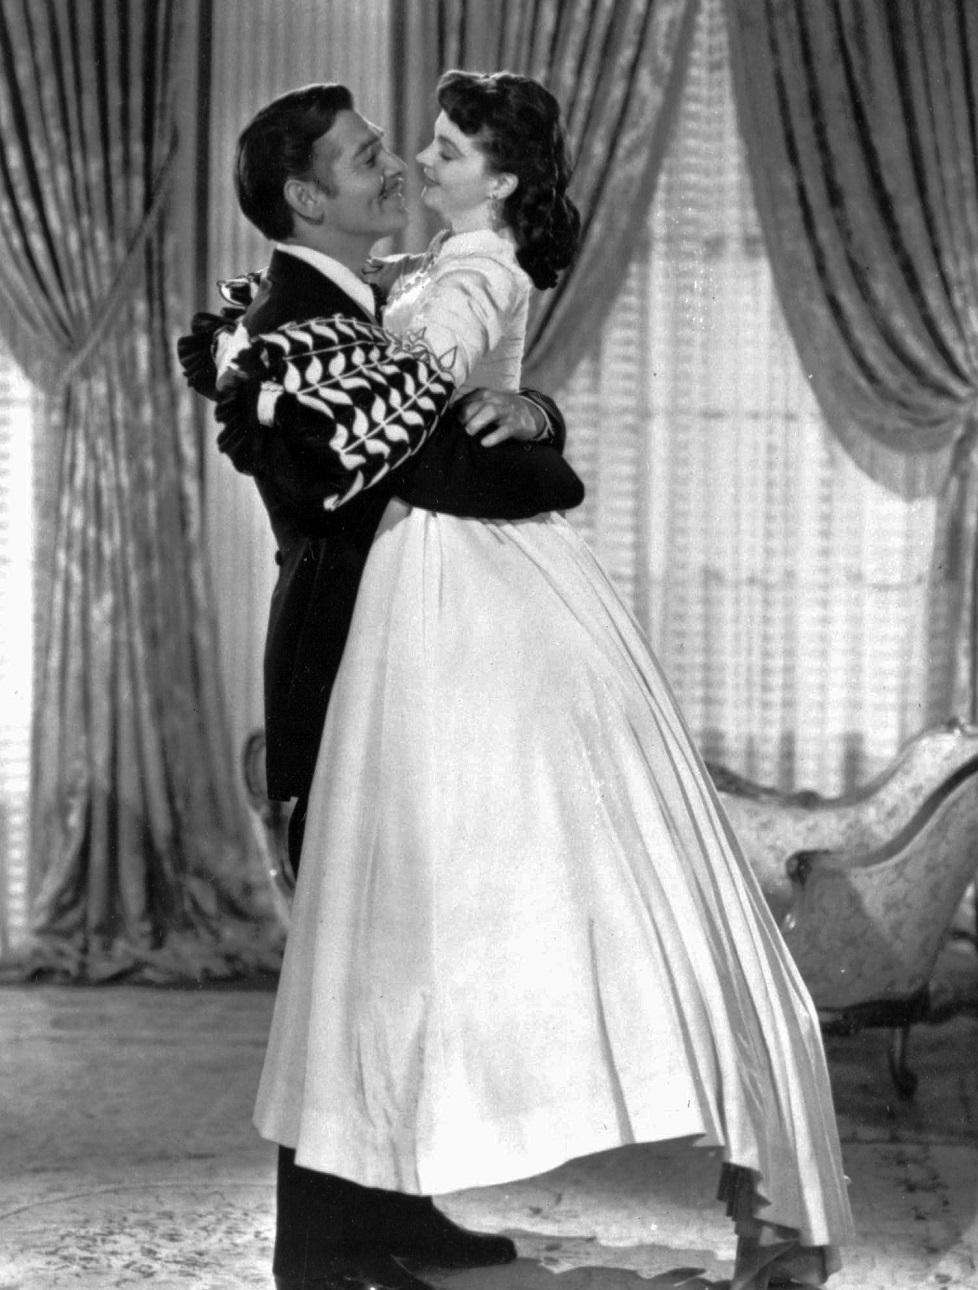 Clark Gable and Vivien Leigh in a scene